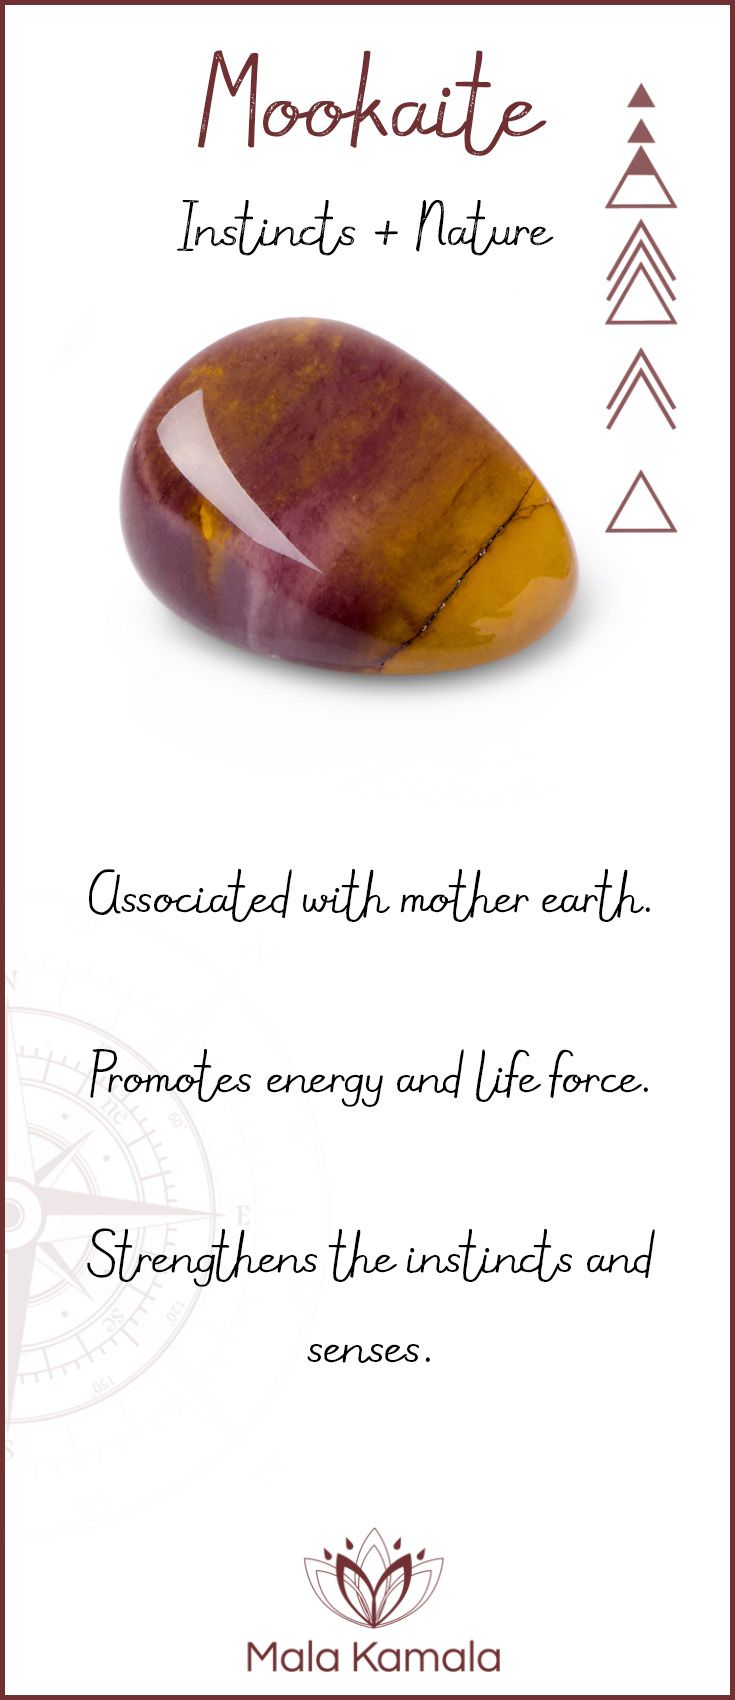 Pin To Save, Tap To Shop The Gem. What is the meaning and crystal and chakra healing properties of mookaite? A stone for insincts and nature. Mala Kamala Mala Beads - Malas, Mala Beads, Mala Bracelets, Tiny Intentions, Baby Necklaces, Yoga Jewelry, Meditation Jewelry, Baltic Amber Necklaces, Gemstone Jewelry, Chakra Healing and Crystal Healing Jewelry, Mala Necklaces, Prayer Beads, Sacred Jewelry, Bohemian Boho Jewelry, Childrens and Babies Jewelry.